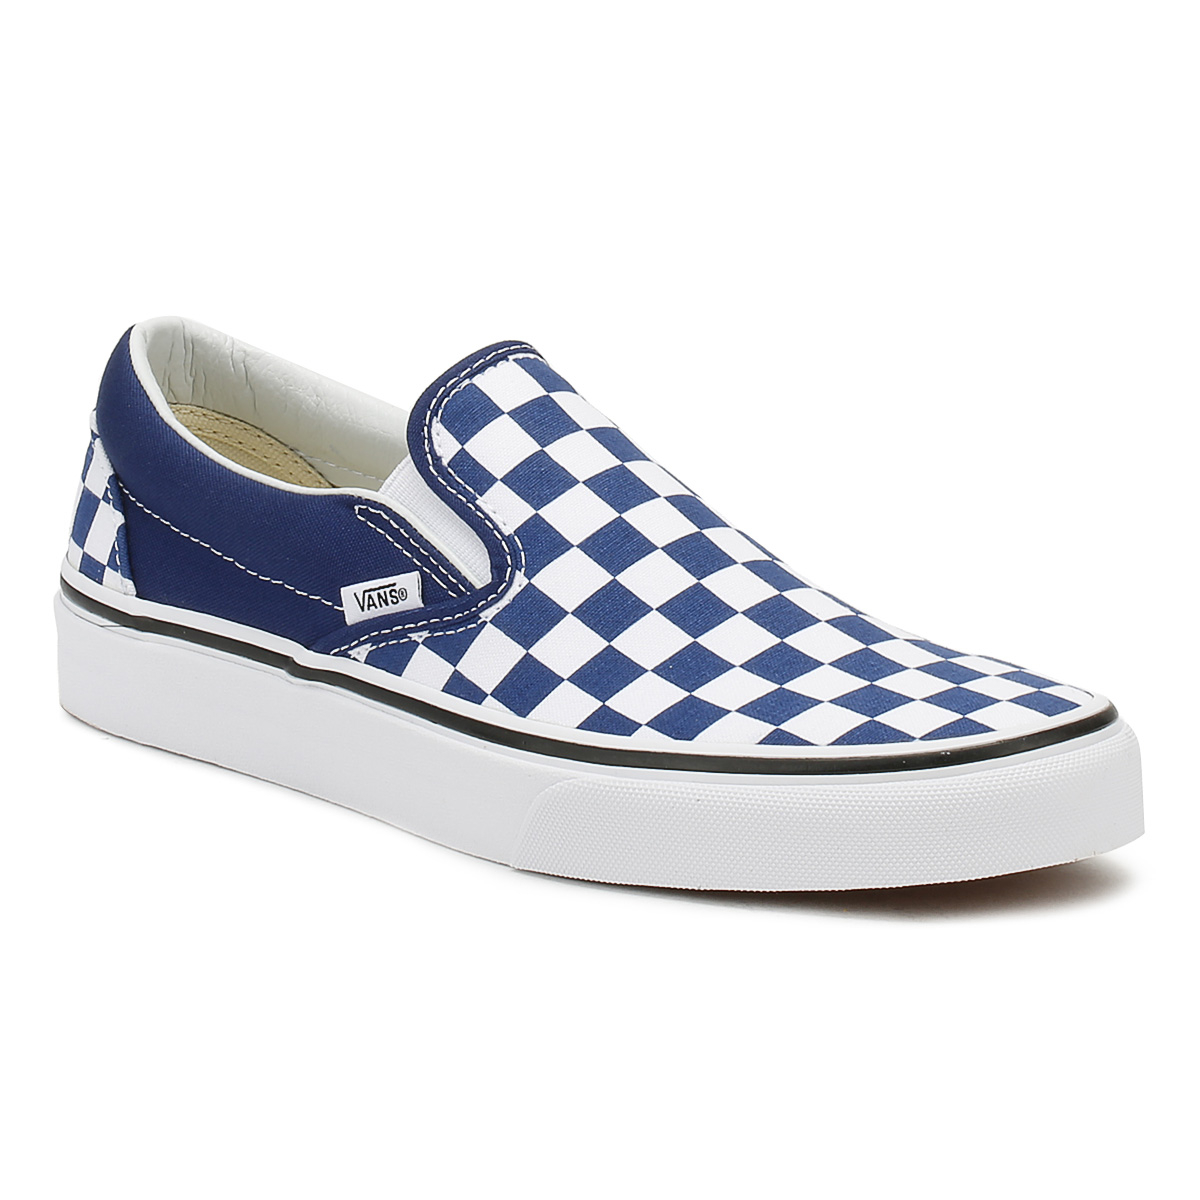 Vans Mens Slip On Trainers Estate Shoes Blue Checkerboard Classic Casual Shoes Estate bdb0d8